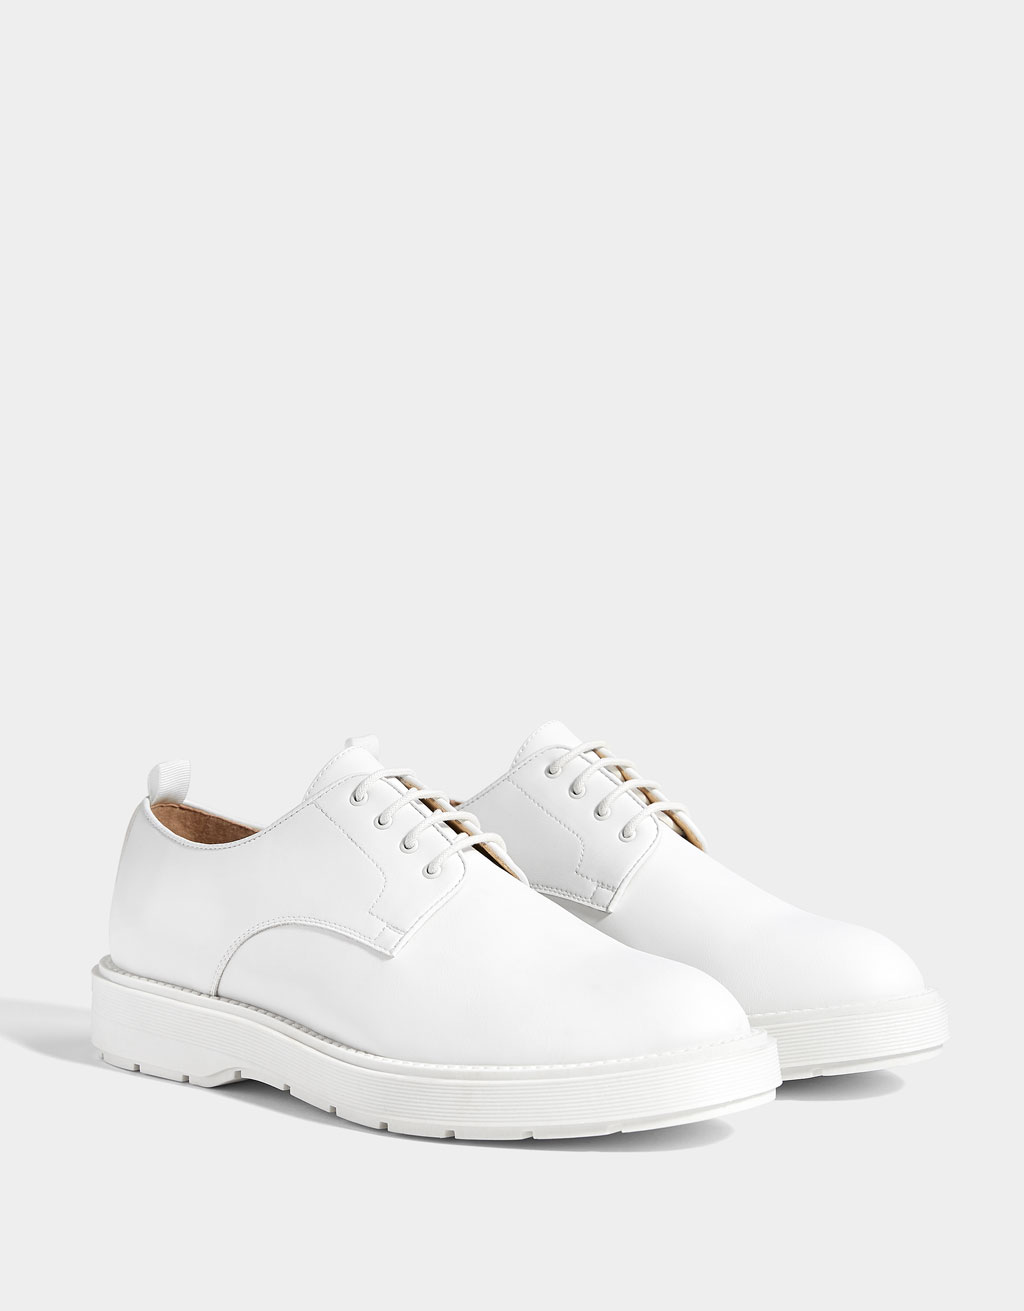 Men's monochrome shoes